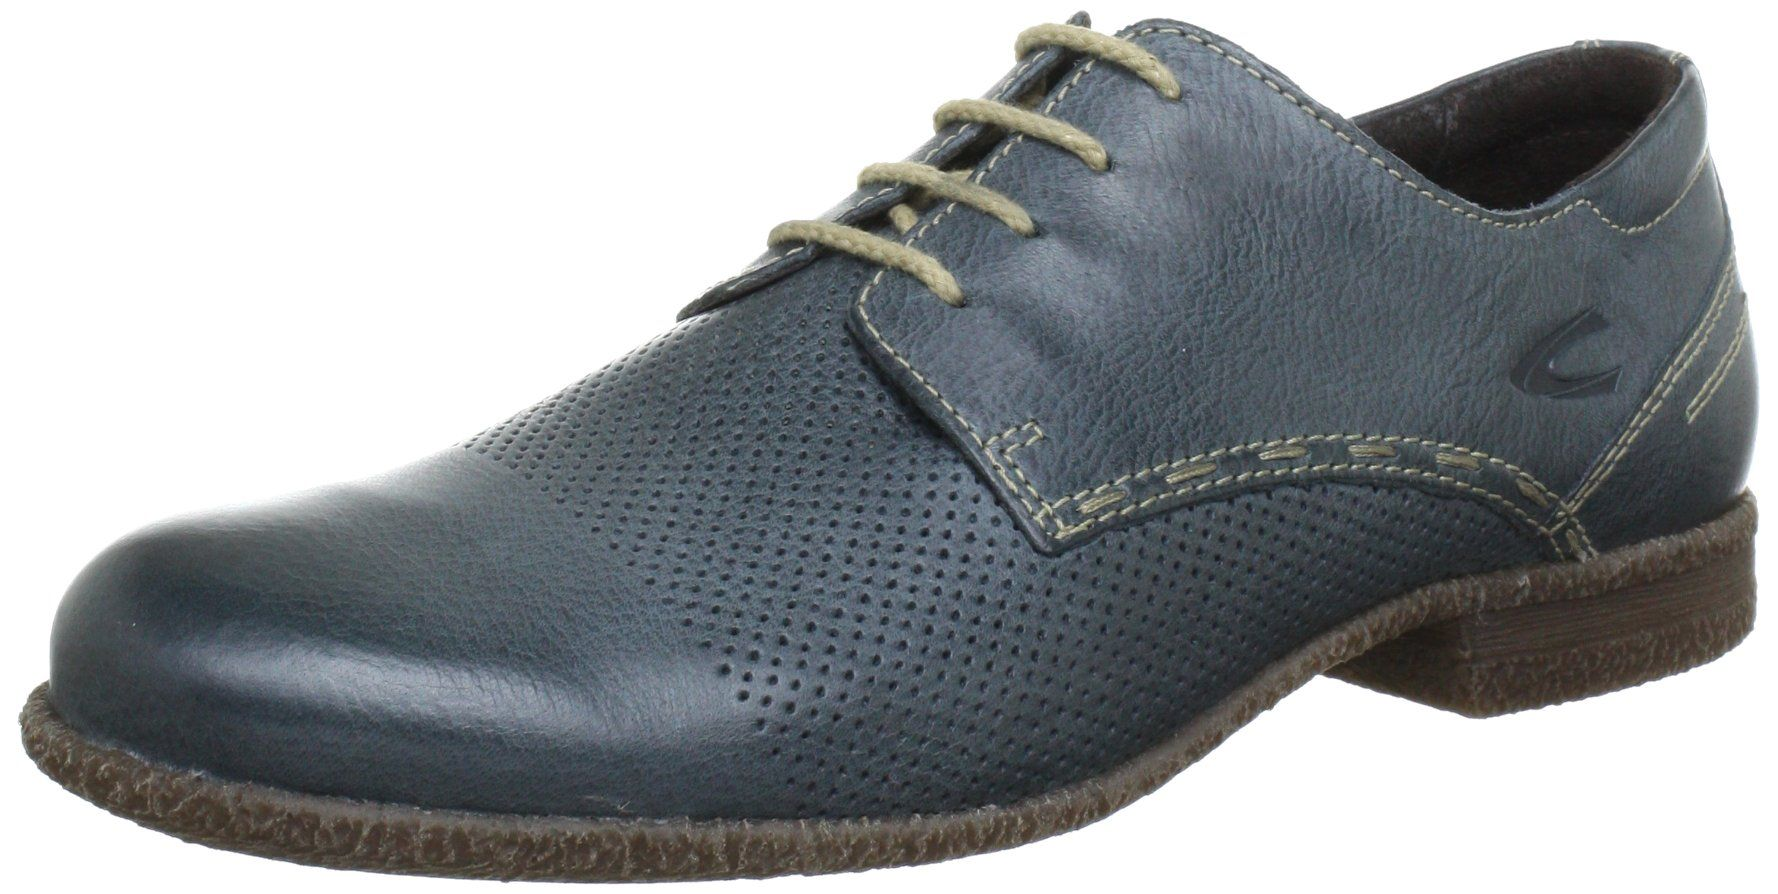 8af193f937 camel active Cadiz 11 Lace-Ups Men blue Blau (jeans) Size  40.5  Amazon.co.uk   Shoes   Bags